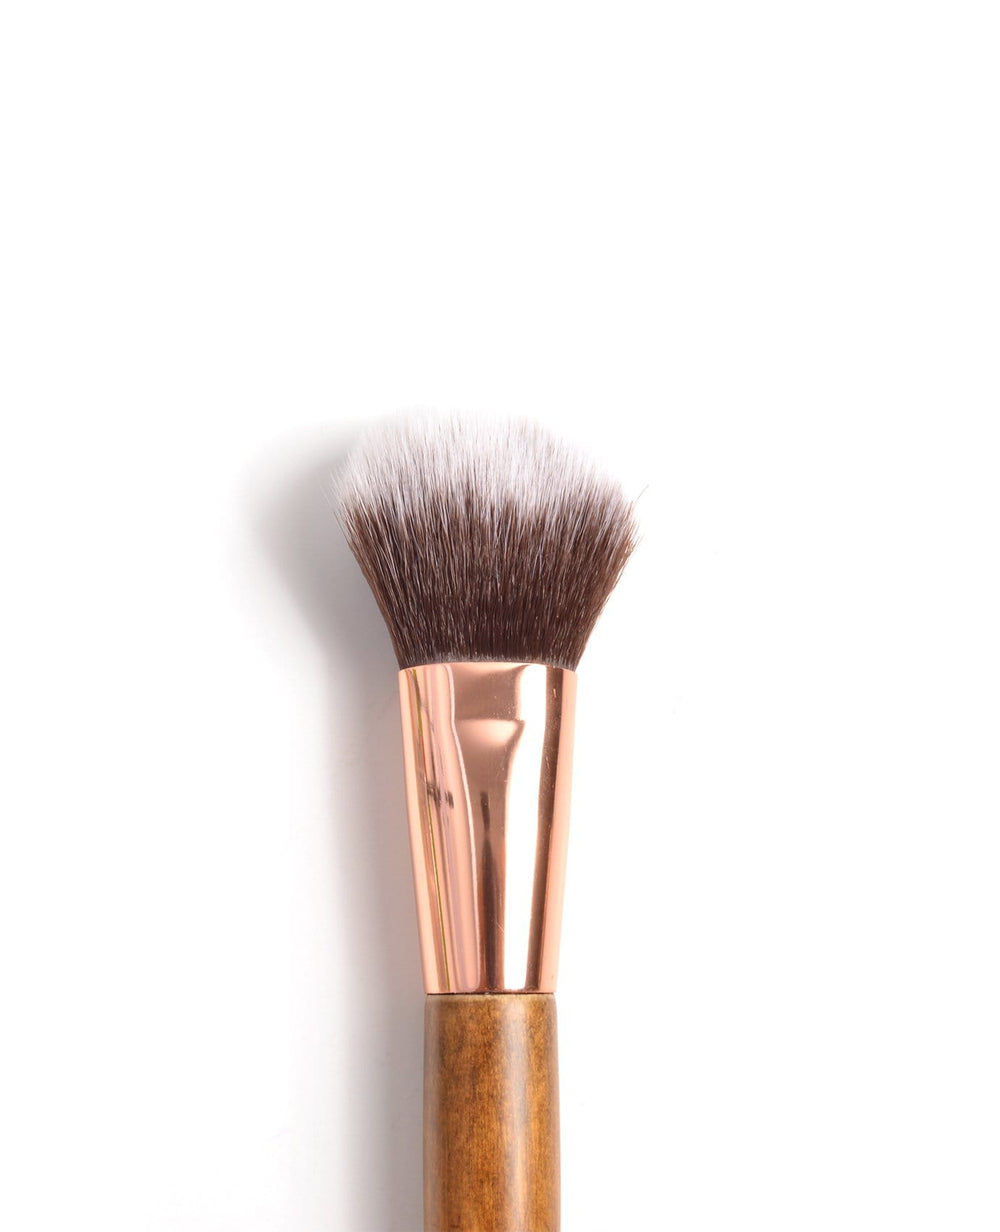 Amor Us Premium Deluxe Powder Brush - #102